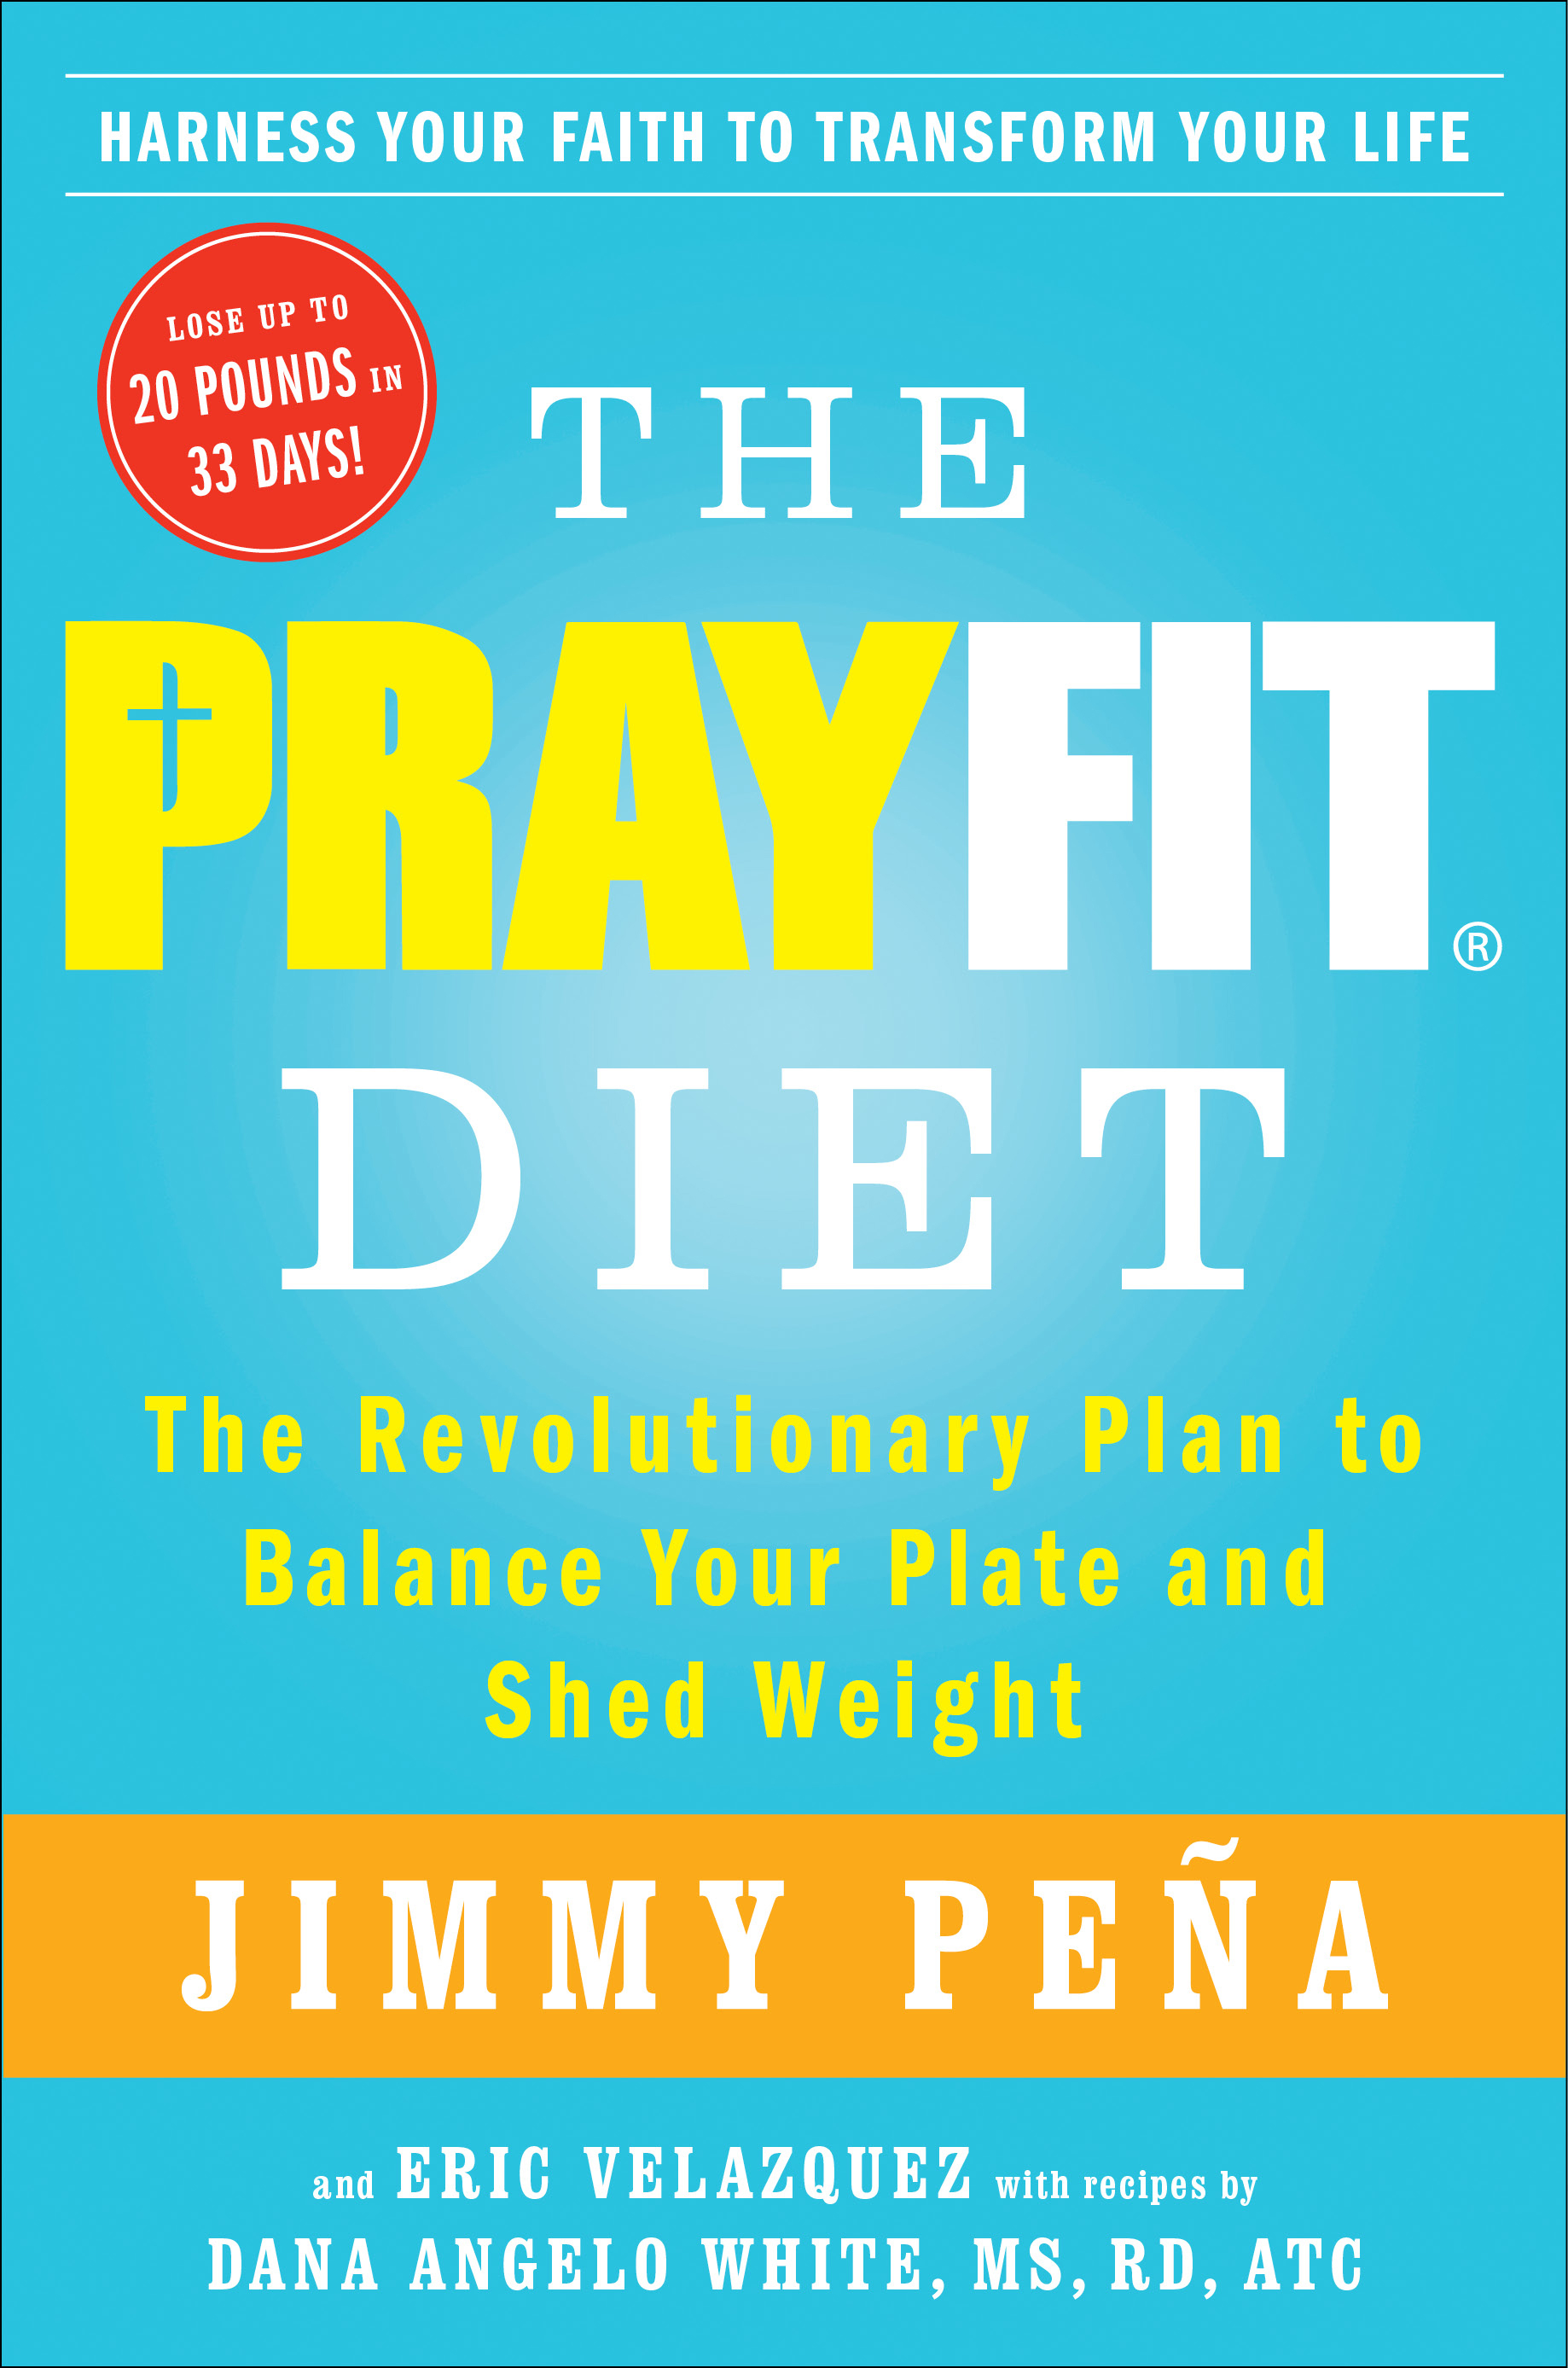 Final Prayfit Diet Cover